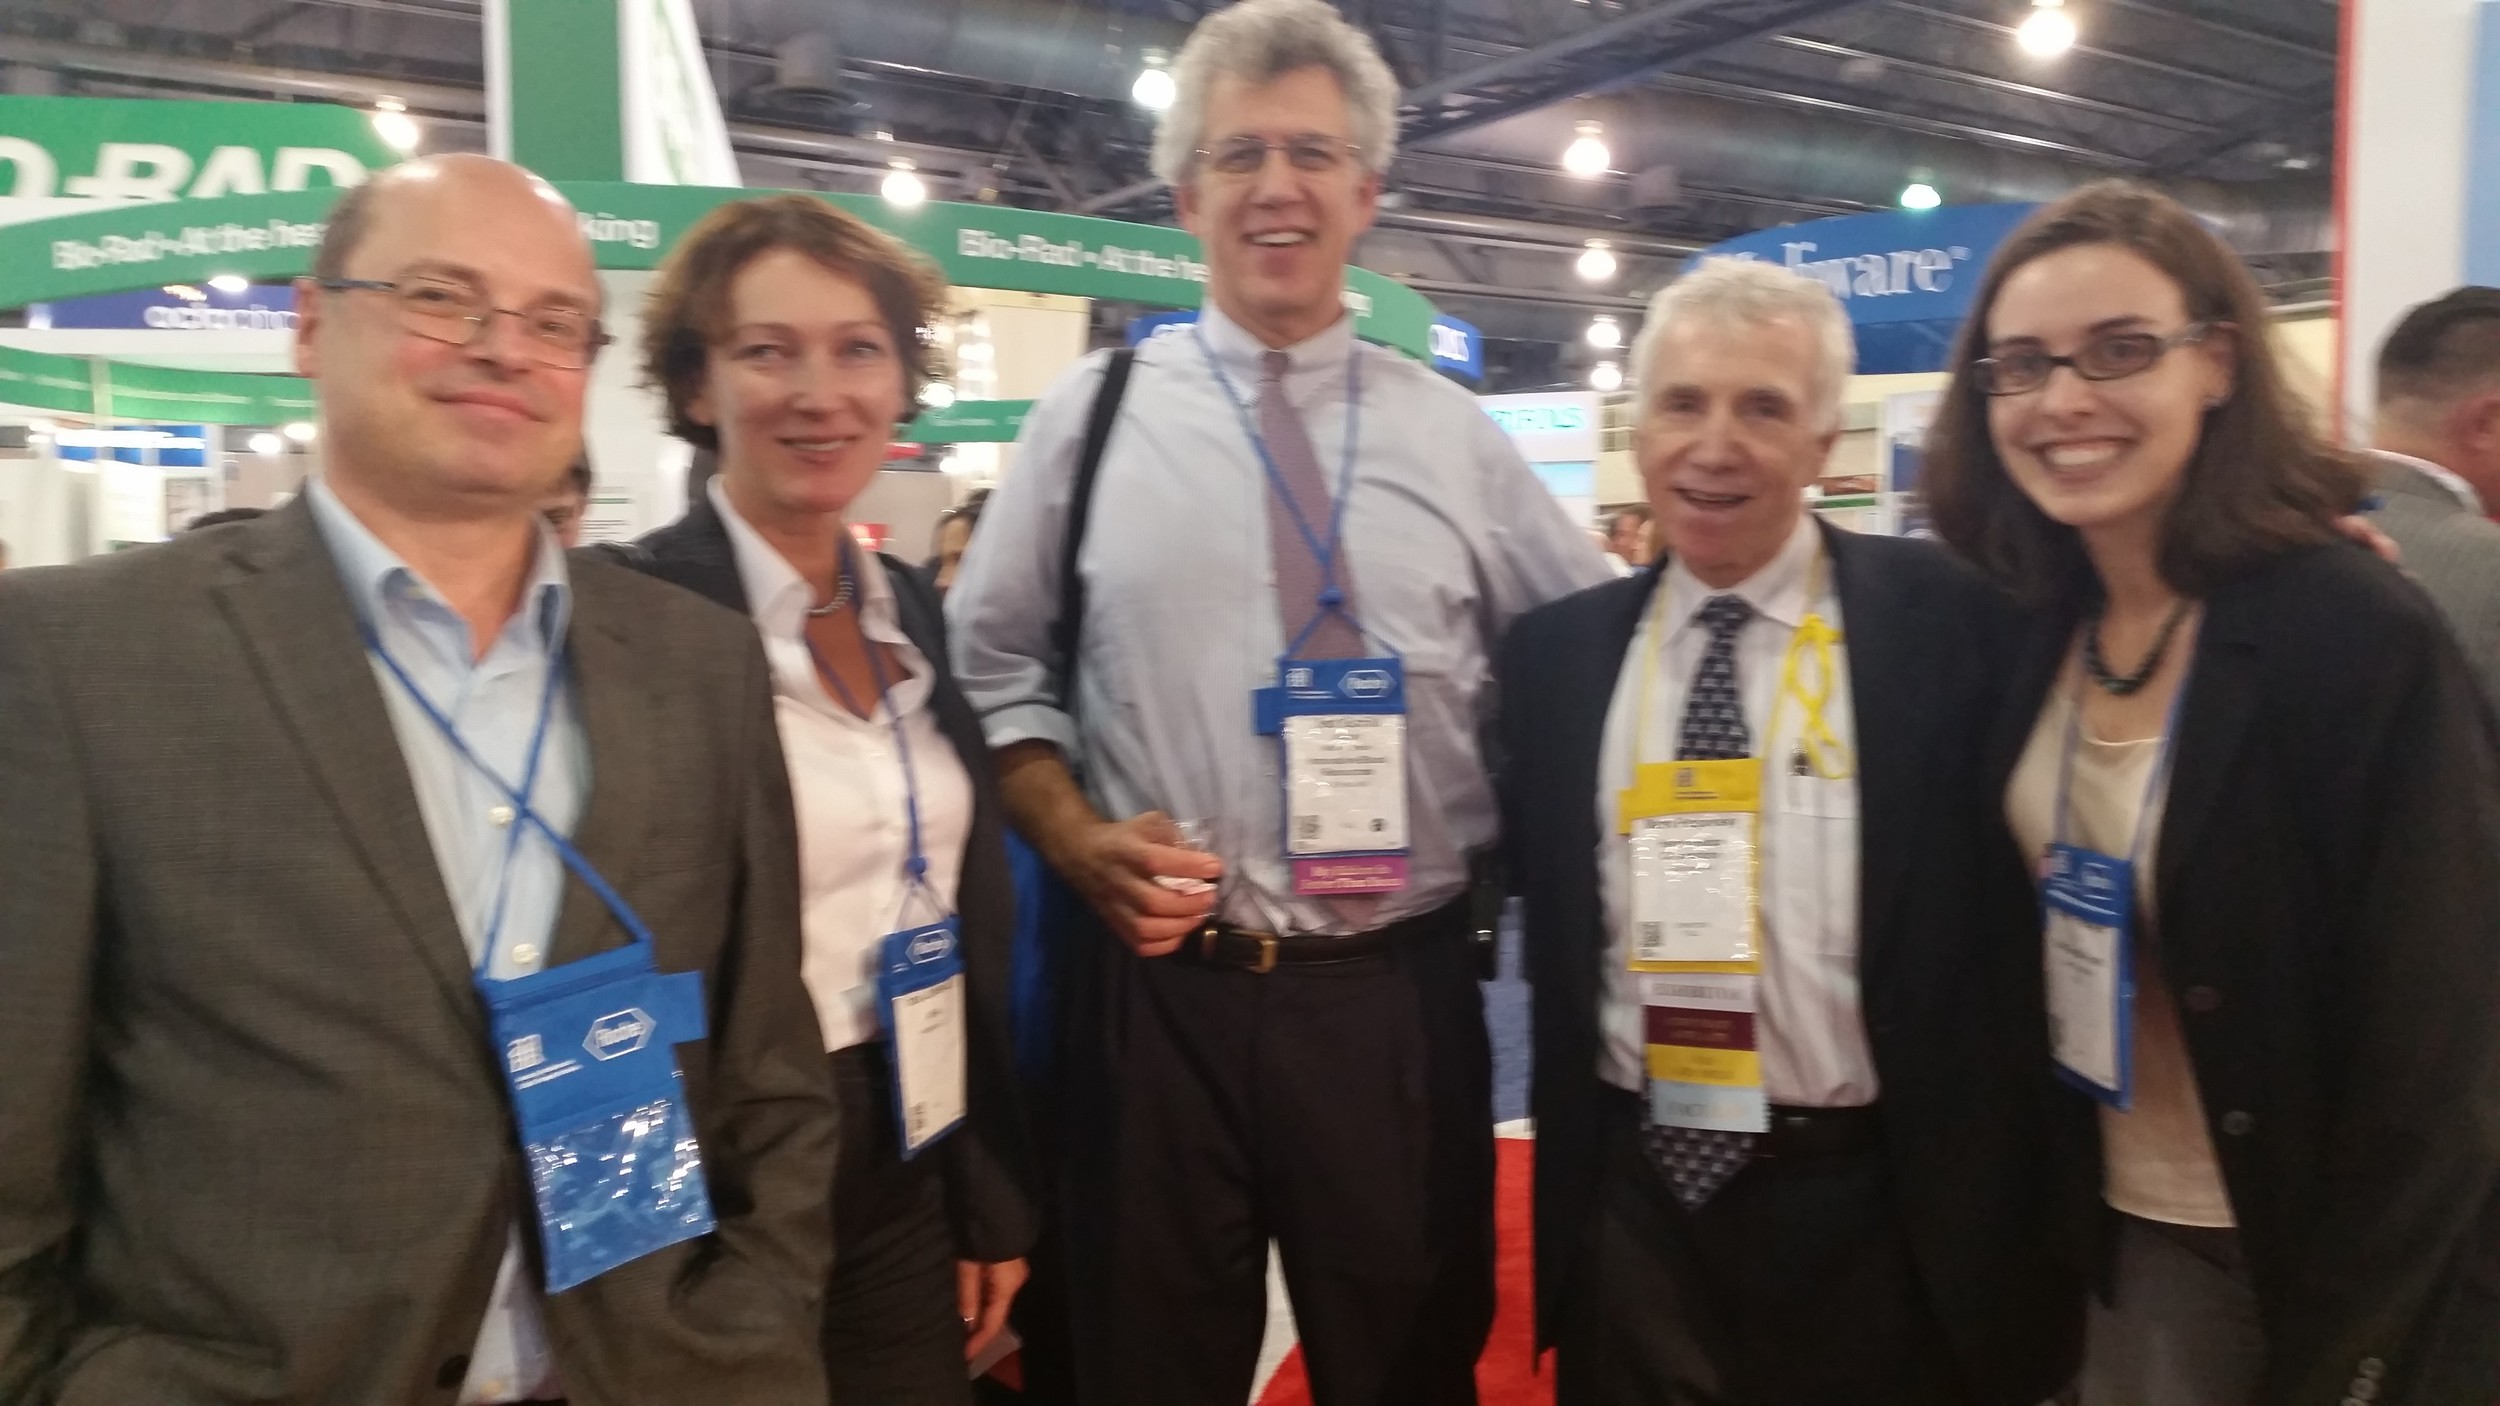 From right to left: Mark Popovsky, Chief Medical Officer ofHaemonetics; Inna Jurkevich, Senior program officer of the American International Health Alliance; Jed Gorlin, the Medical Director of Memorial Blood Centers; and Charles Munk, the IT consultant for AABB. Photo credit to Pat from the Red Cross.